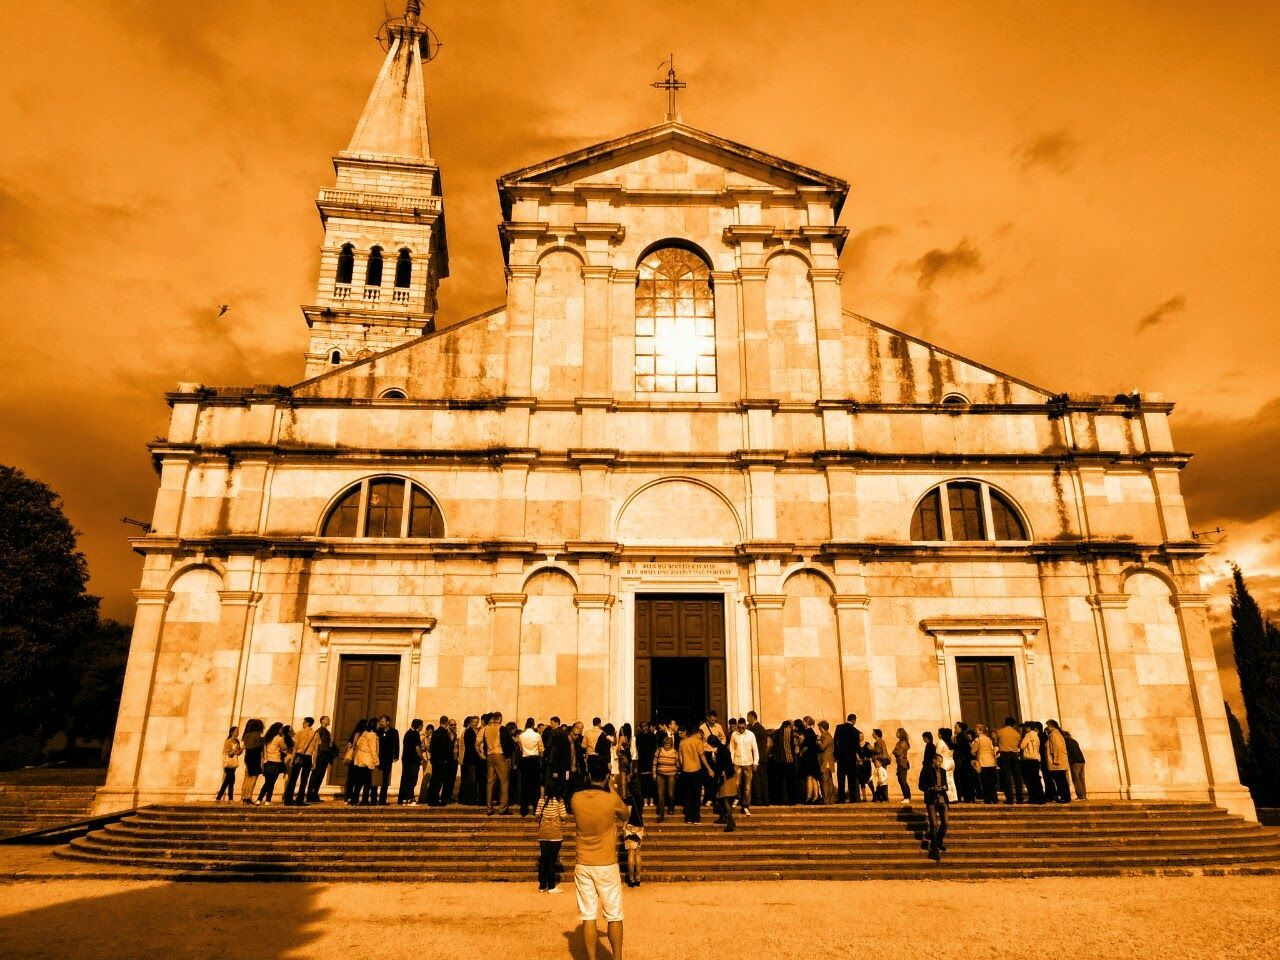 architecture, large group of people, religion, built structure, building exterior, place of worship, spirituality, men, people, outdoors, day, adult, sky, adults only